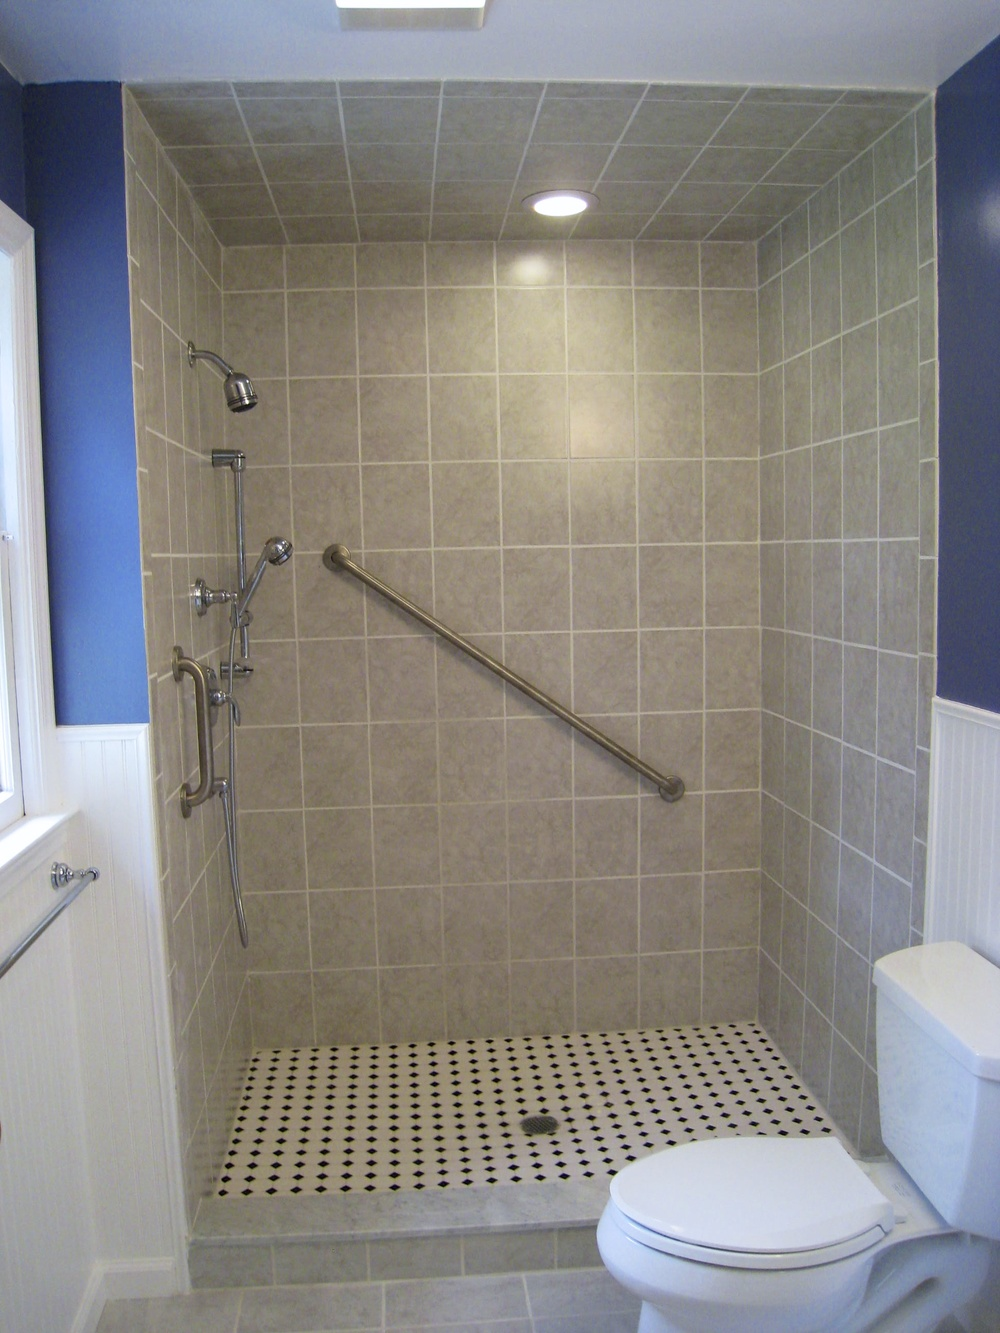 Handycap accessible bathroom.jpg